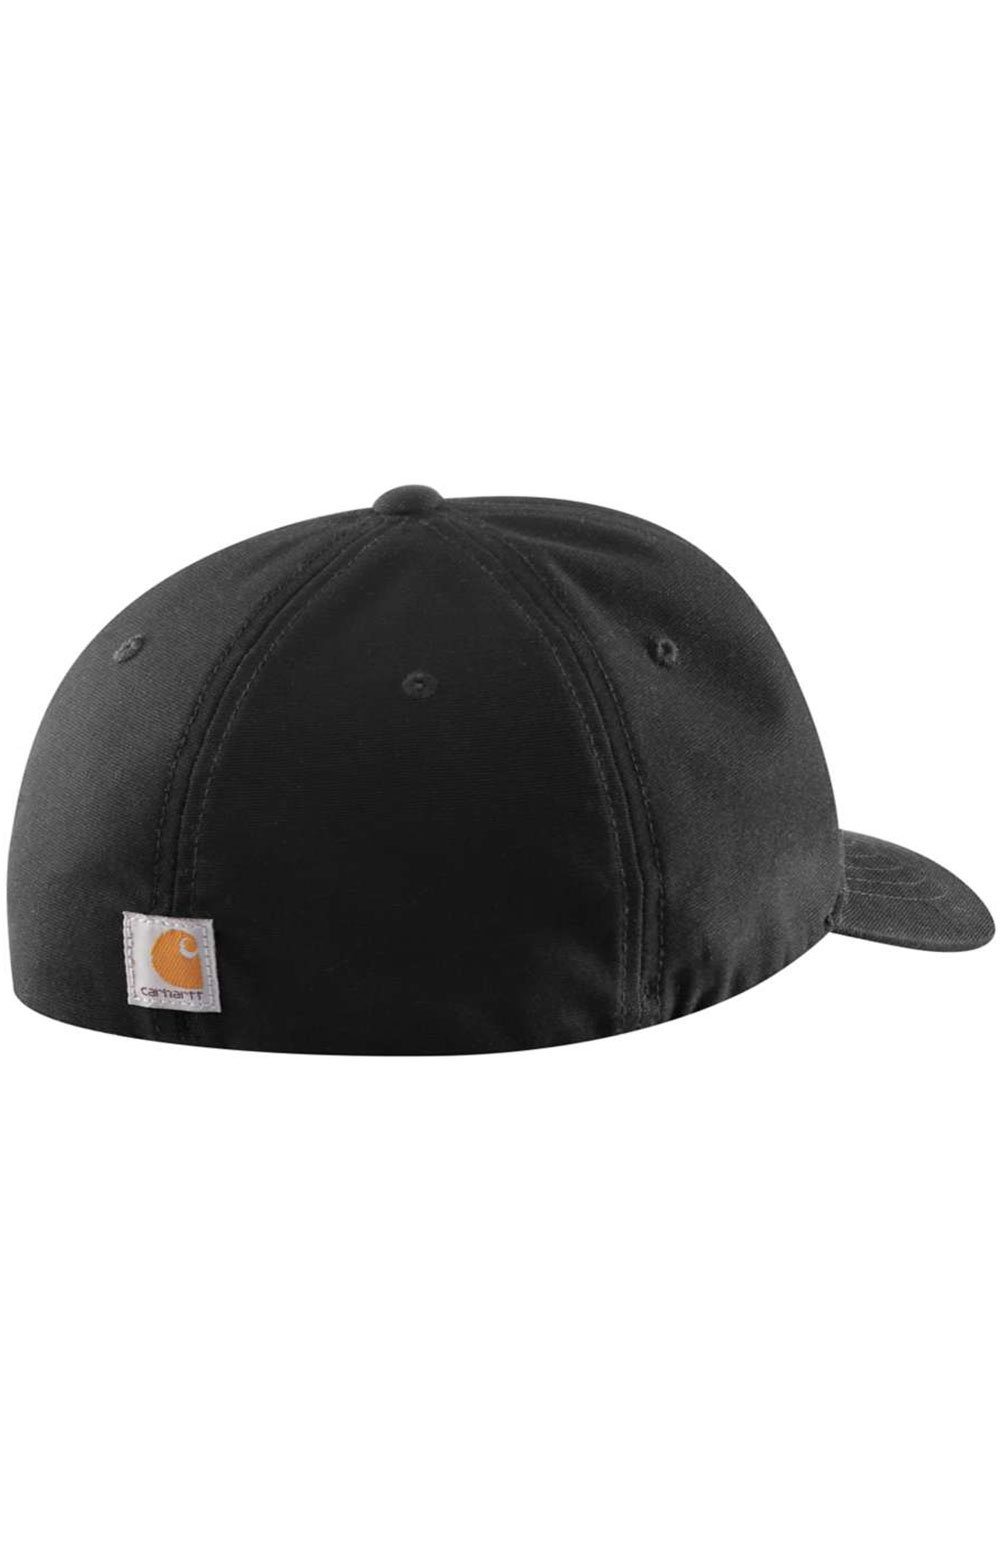 (104298) Rugged Flex Canvas Full-Back Fitted Logo Graphic Cap - Black 2